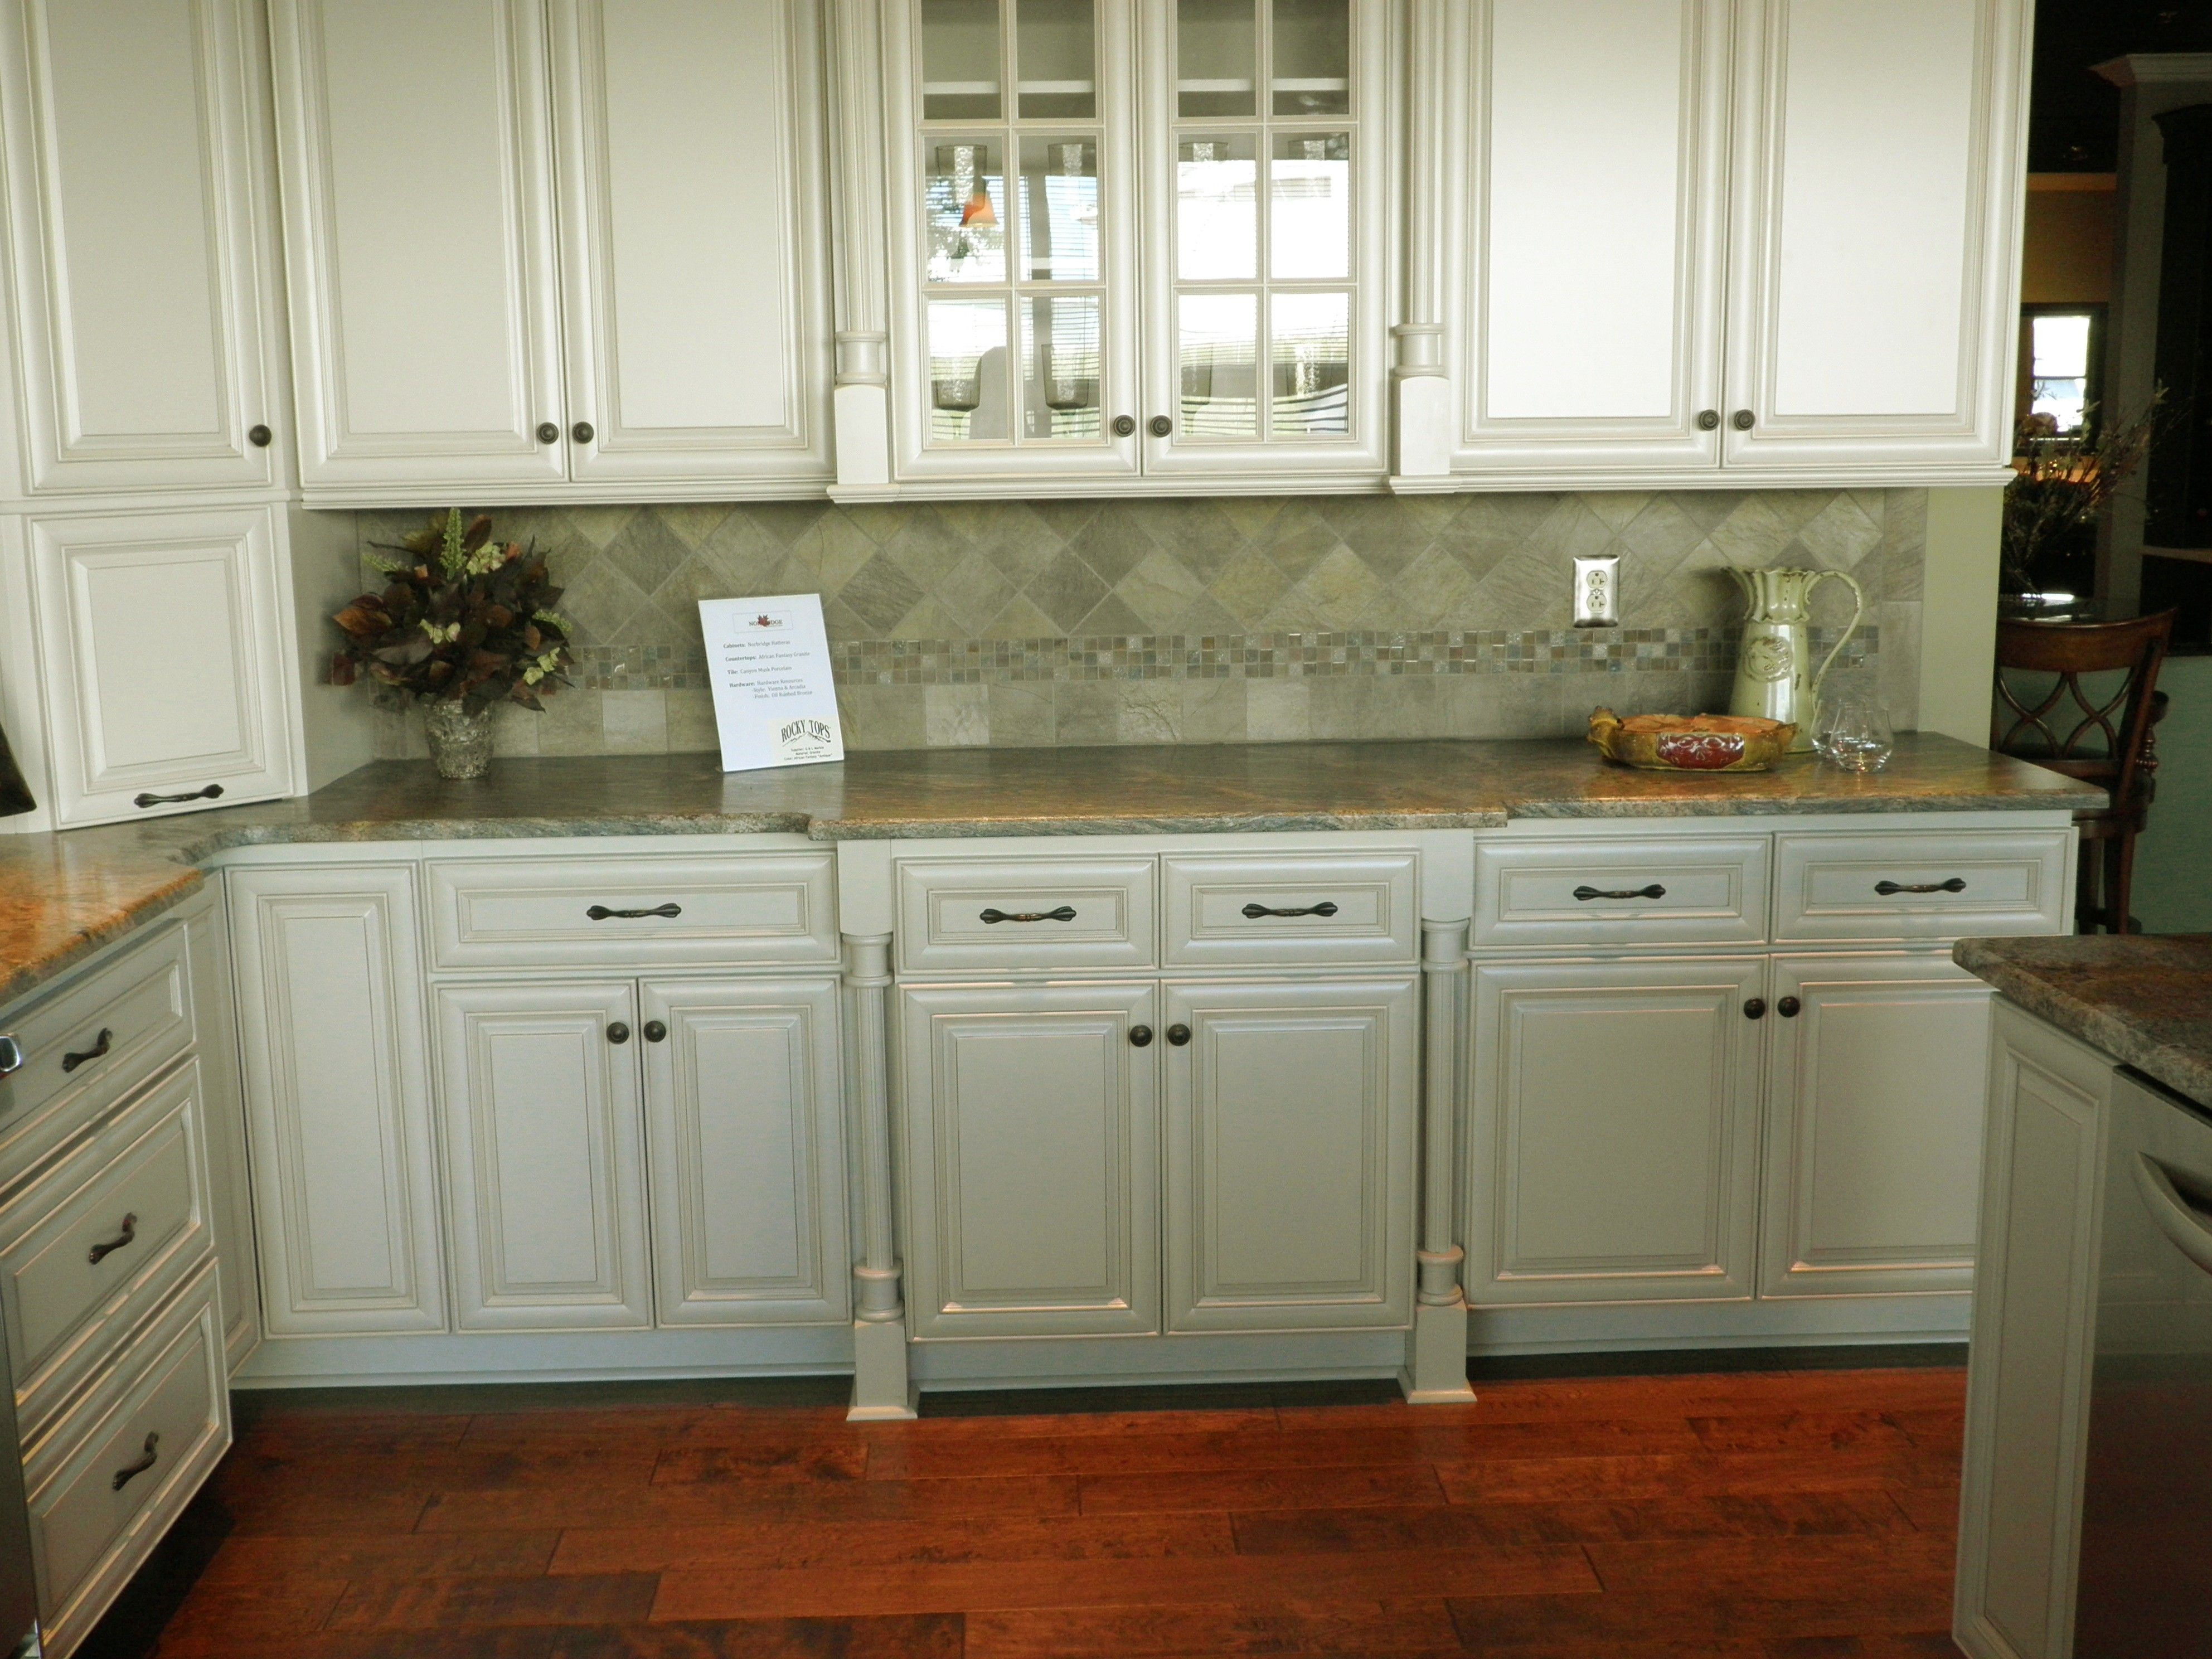 Backsplash With Willow Green Cabinets  Sophisticated Dark Green Cool New Design Kitchen Cabinet Inspiration